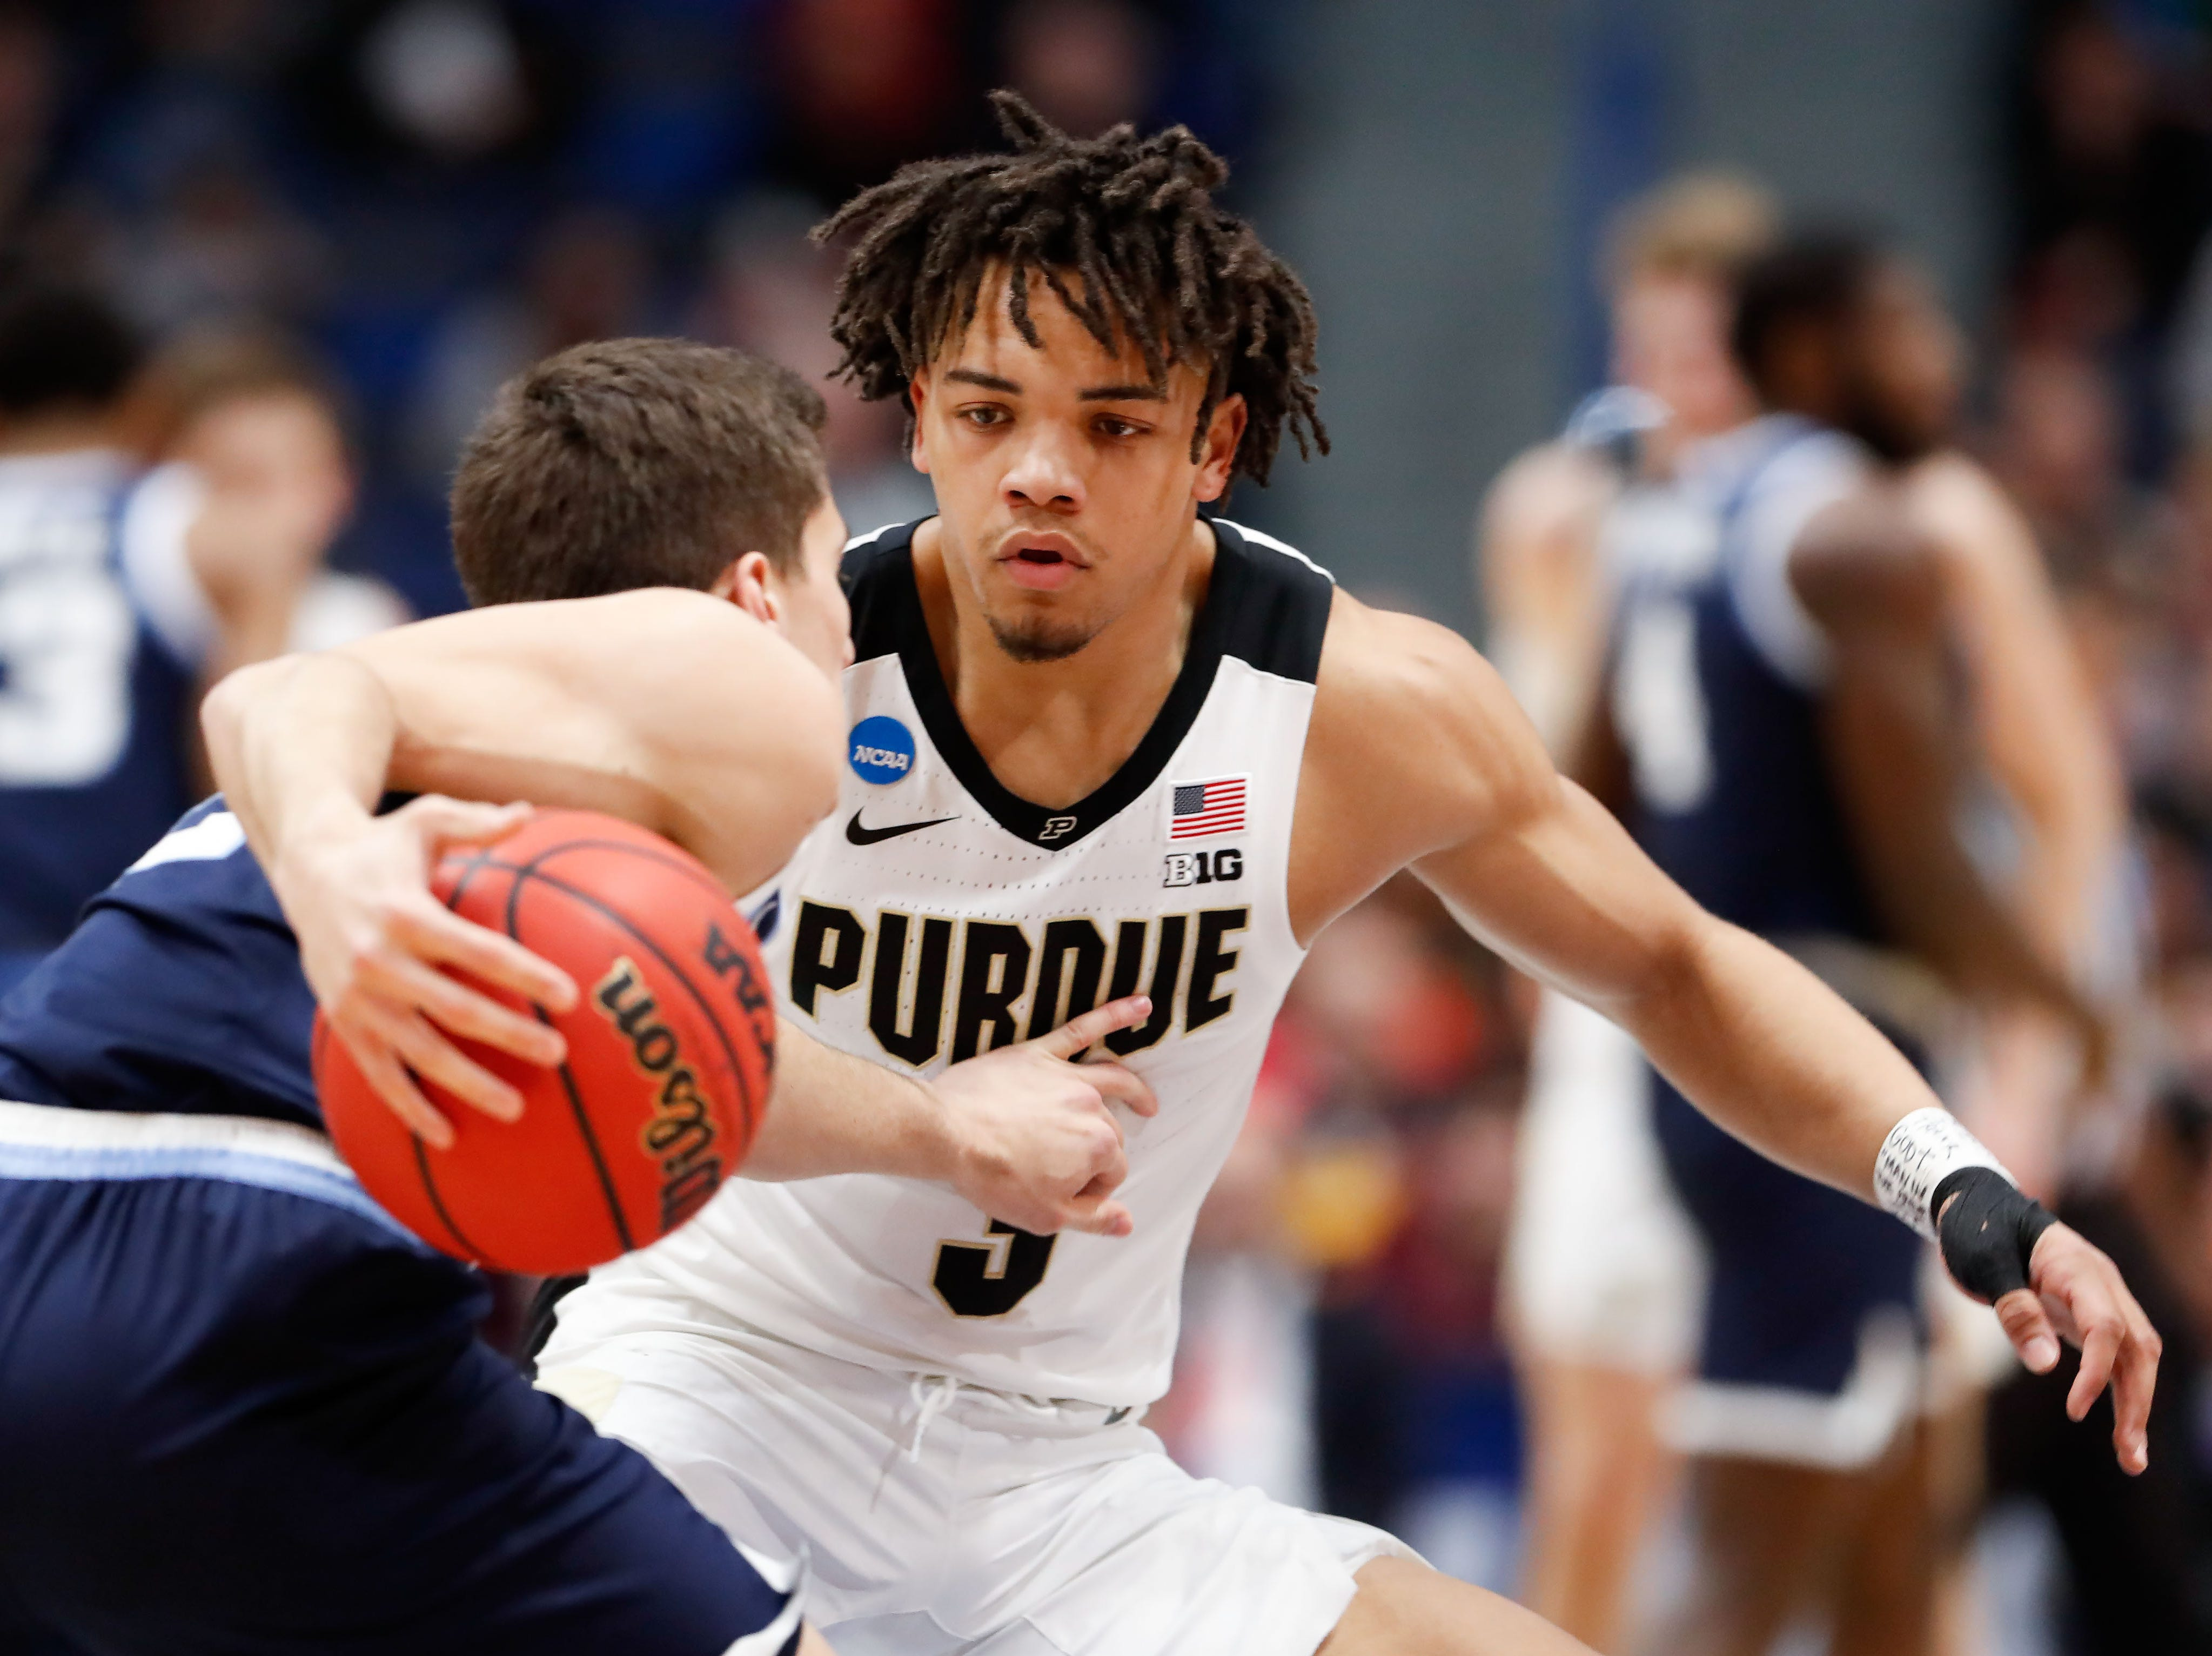 Mar 23, 2019; Hartford, CT, USA; Purdue Boilermakers guard Carsen Edwards (3) defends Villanova Wildcats guard Collin Gillespie (2) during the first half of a game in the second round of the 2019 NCAA Tournament at XL Center. Mandatory Credit: David Butler II-USA TODAY Sports